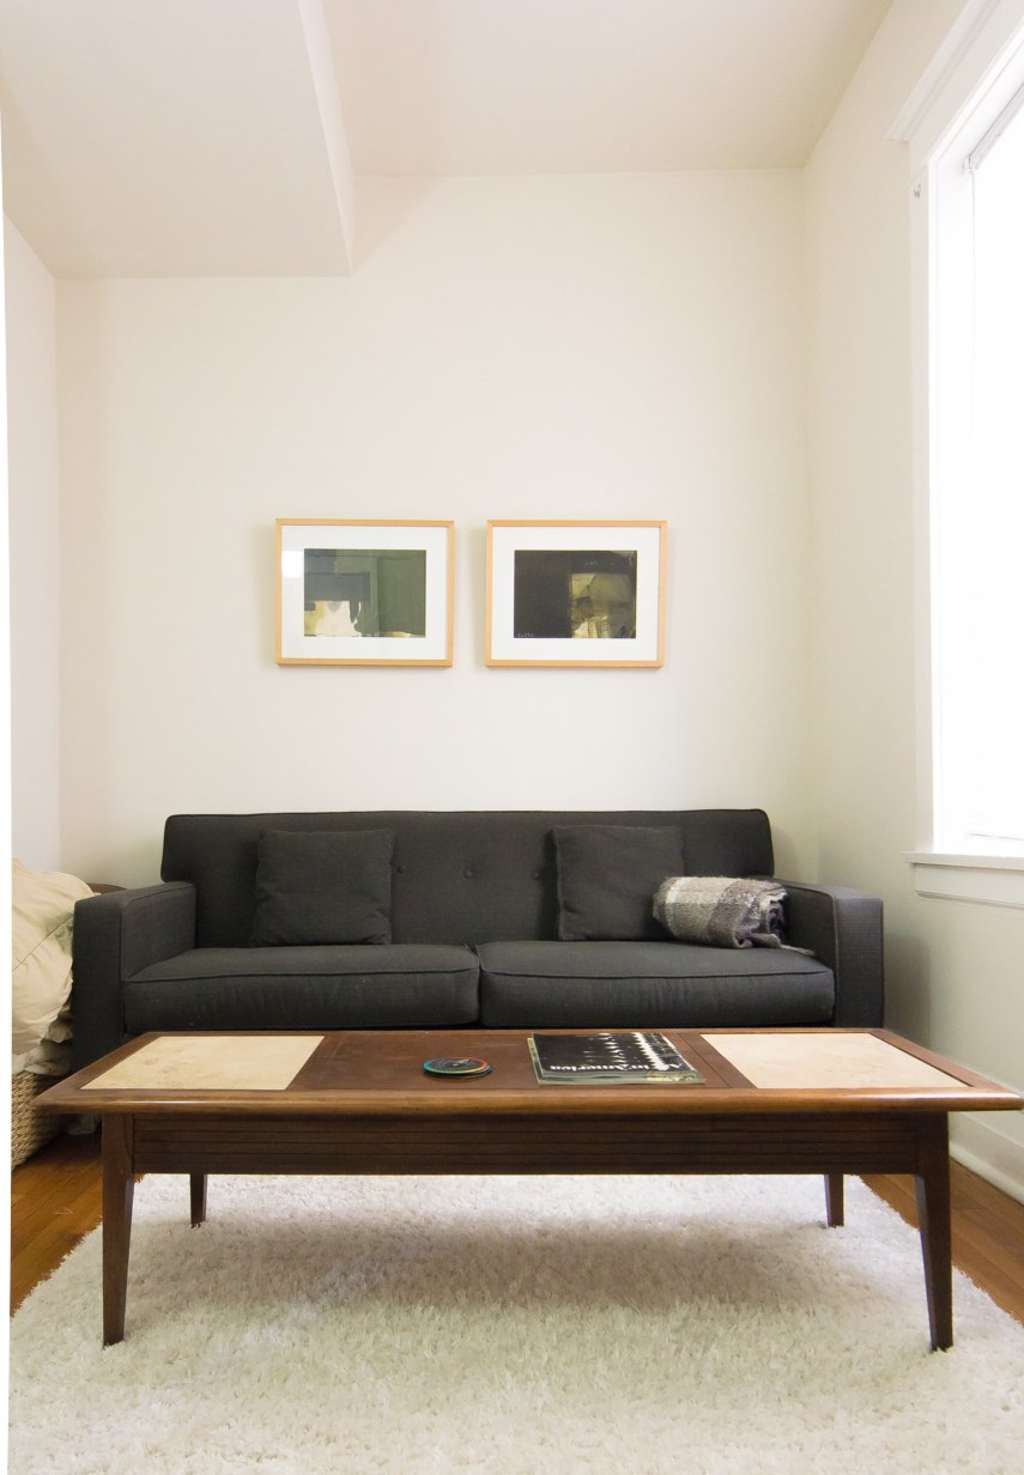 Back to Basics: Our Favorite Interior Design Tips & Techniques